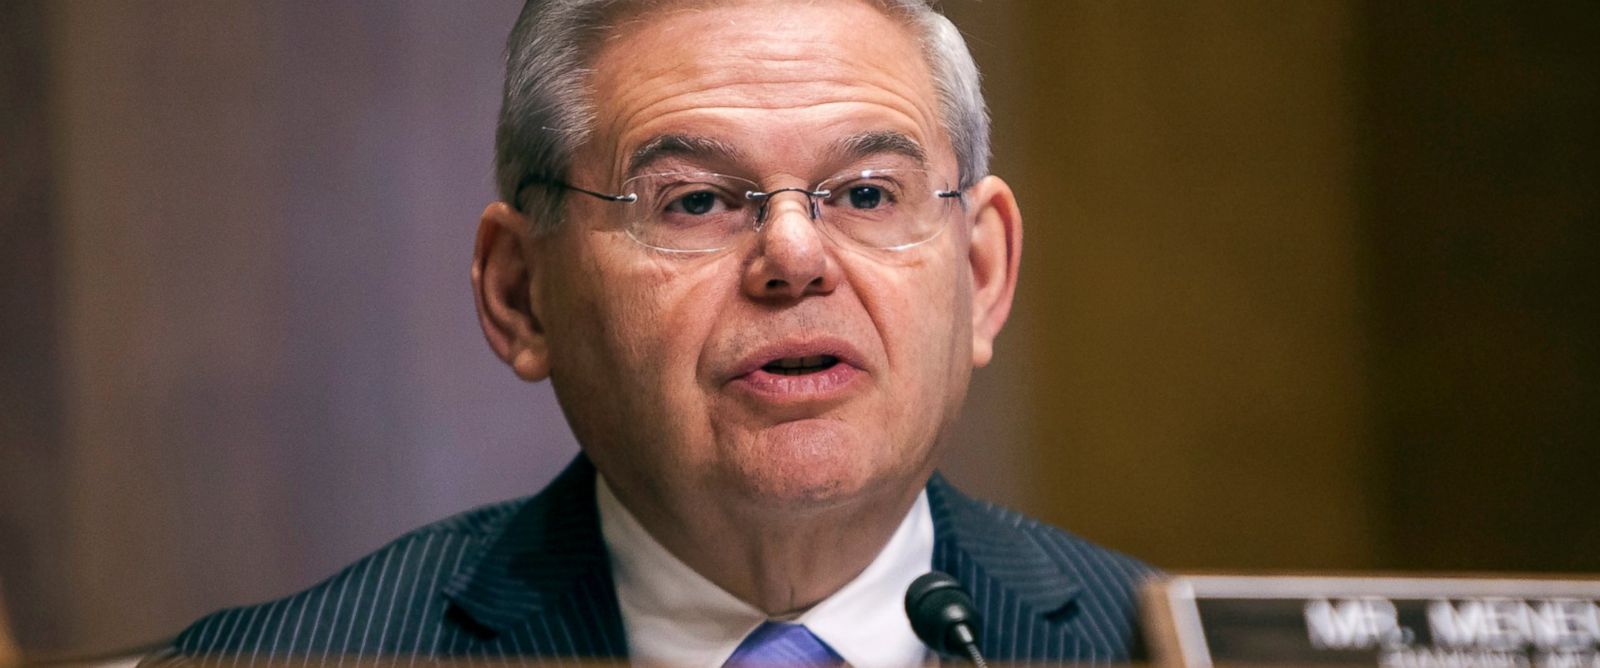 PHOTO: Bob Menendez (D-N.J.) speaks during a Senate Foreign Relations committee hearing on U.S. and Cuban relations in Washington, Feb. 3, 2015.